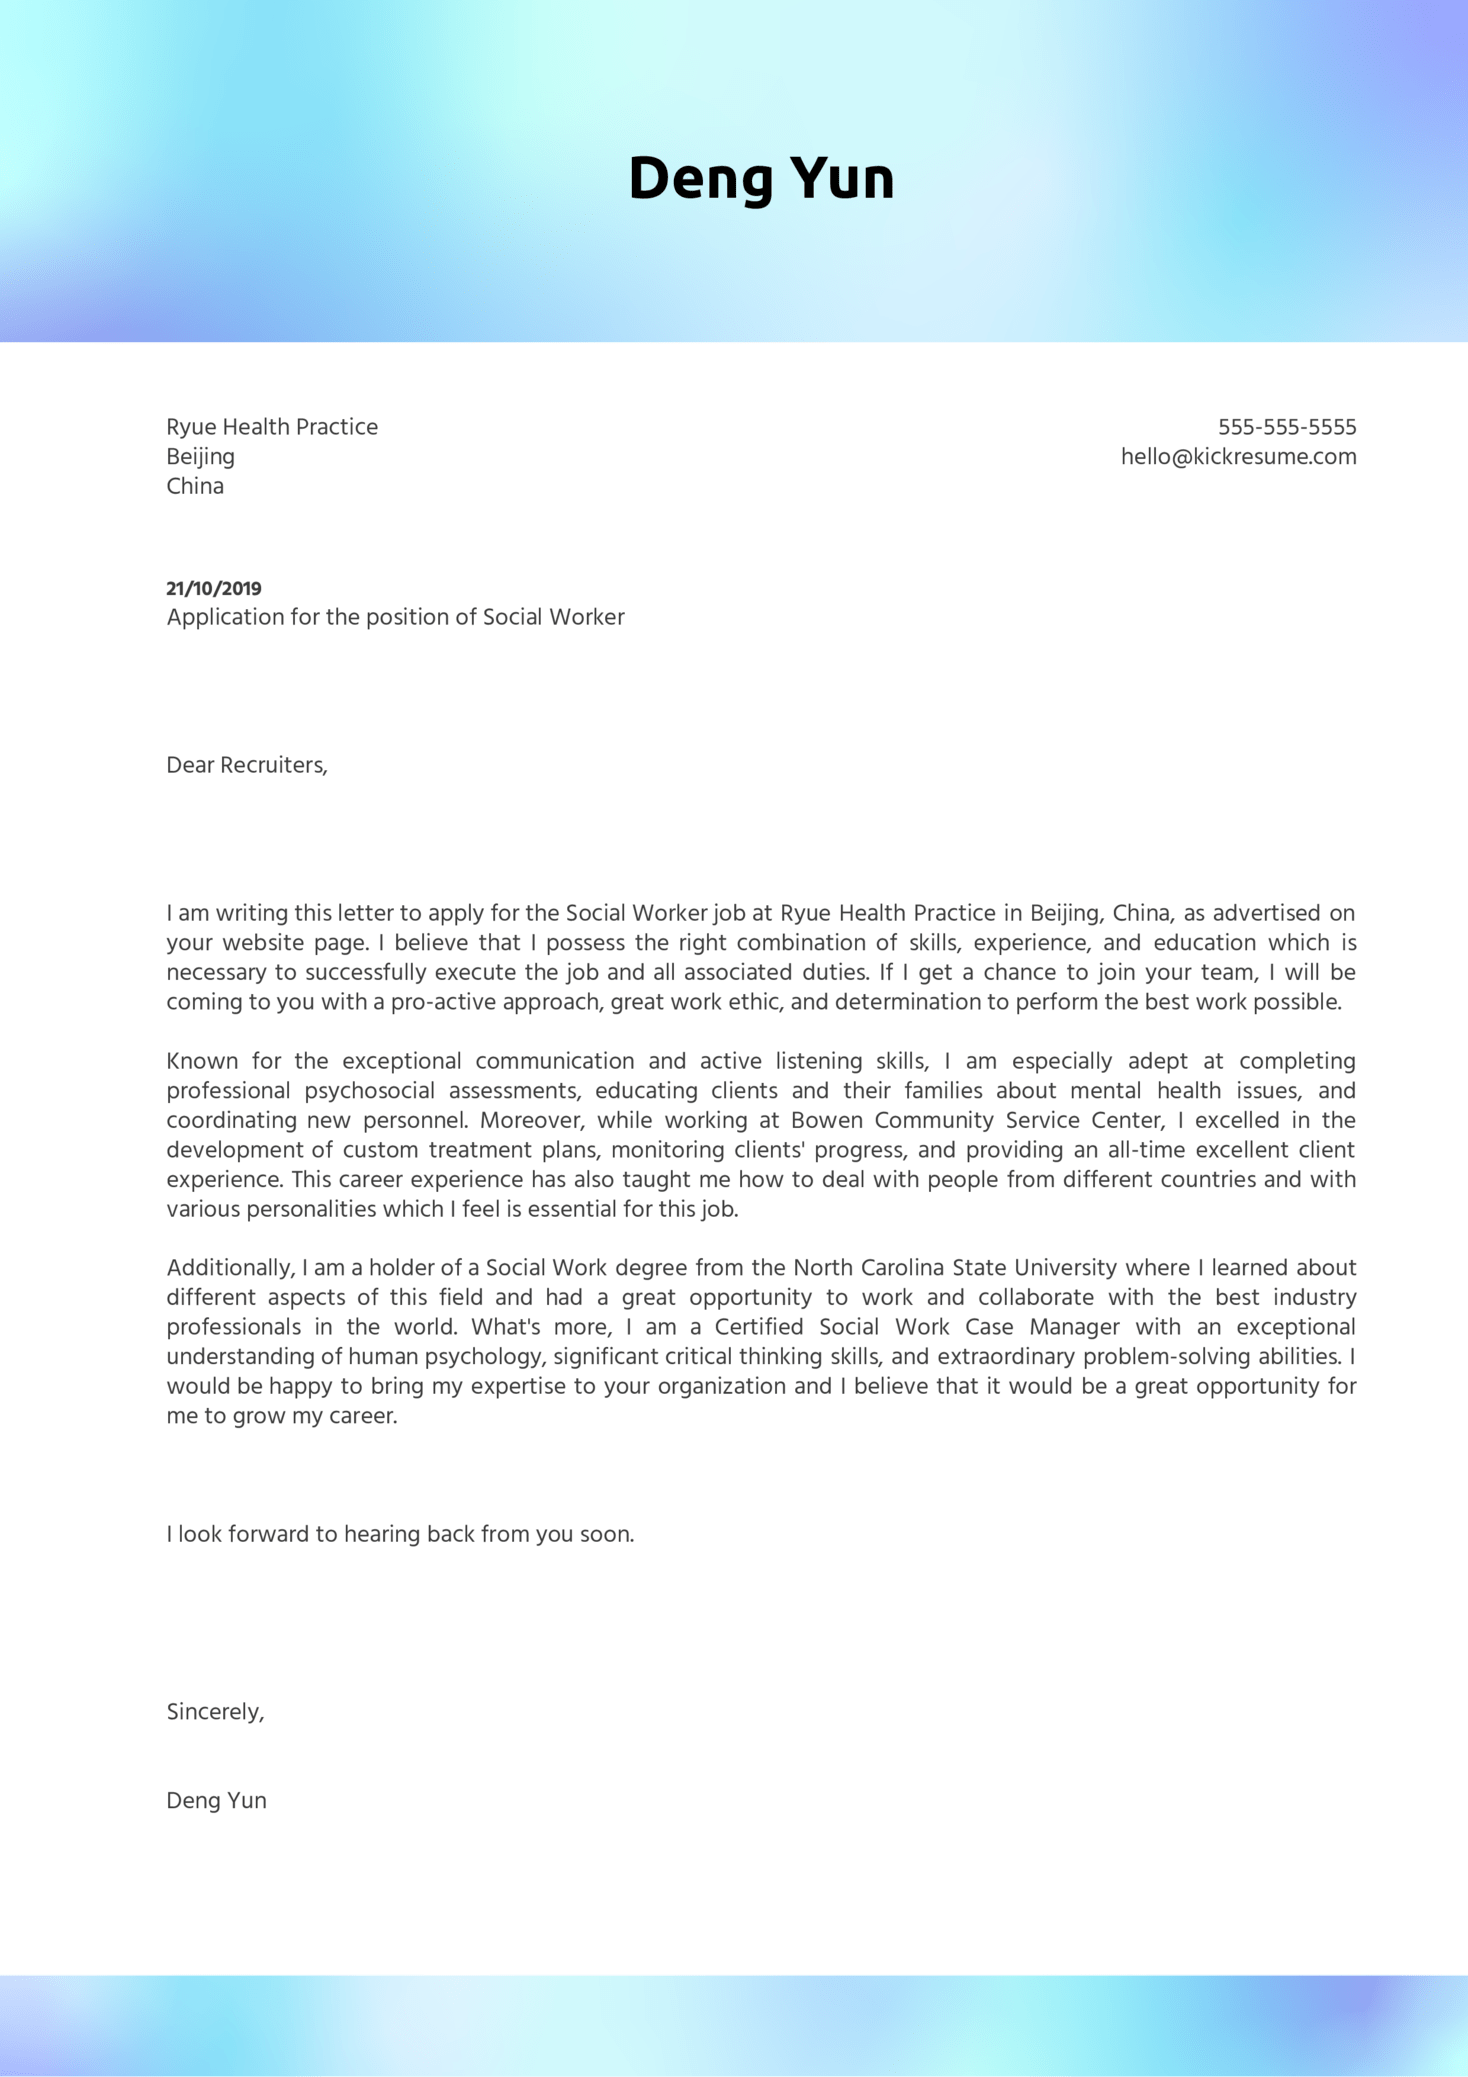 Cover Letter Examples by Real People: Social Worker Cover ...